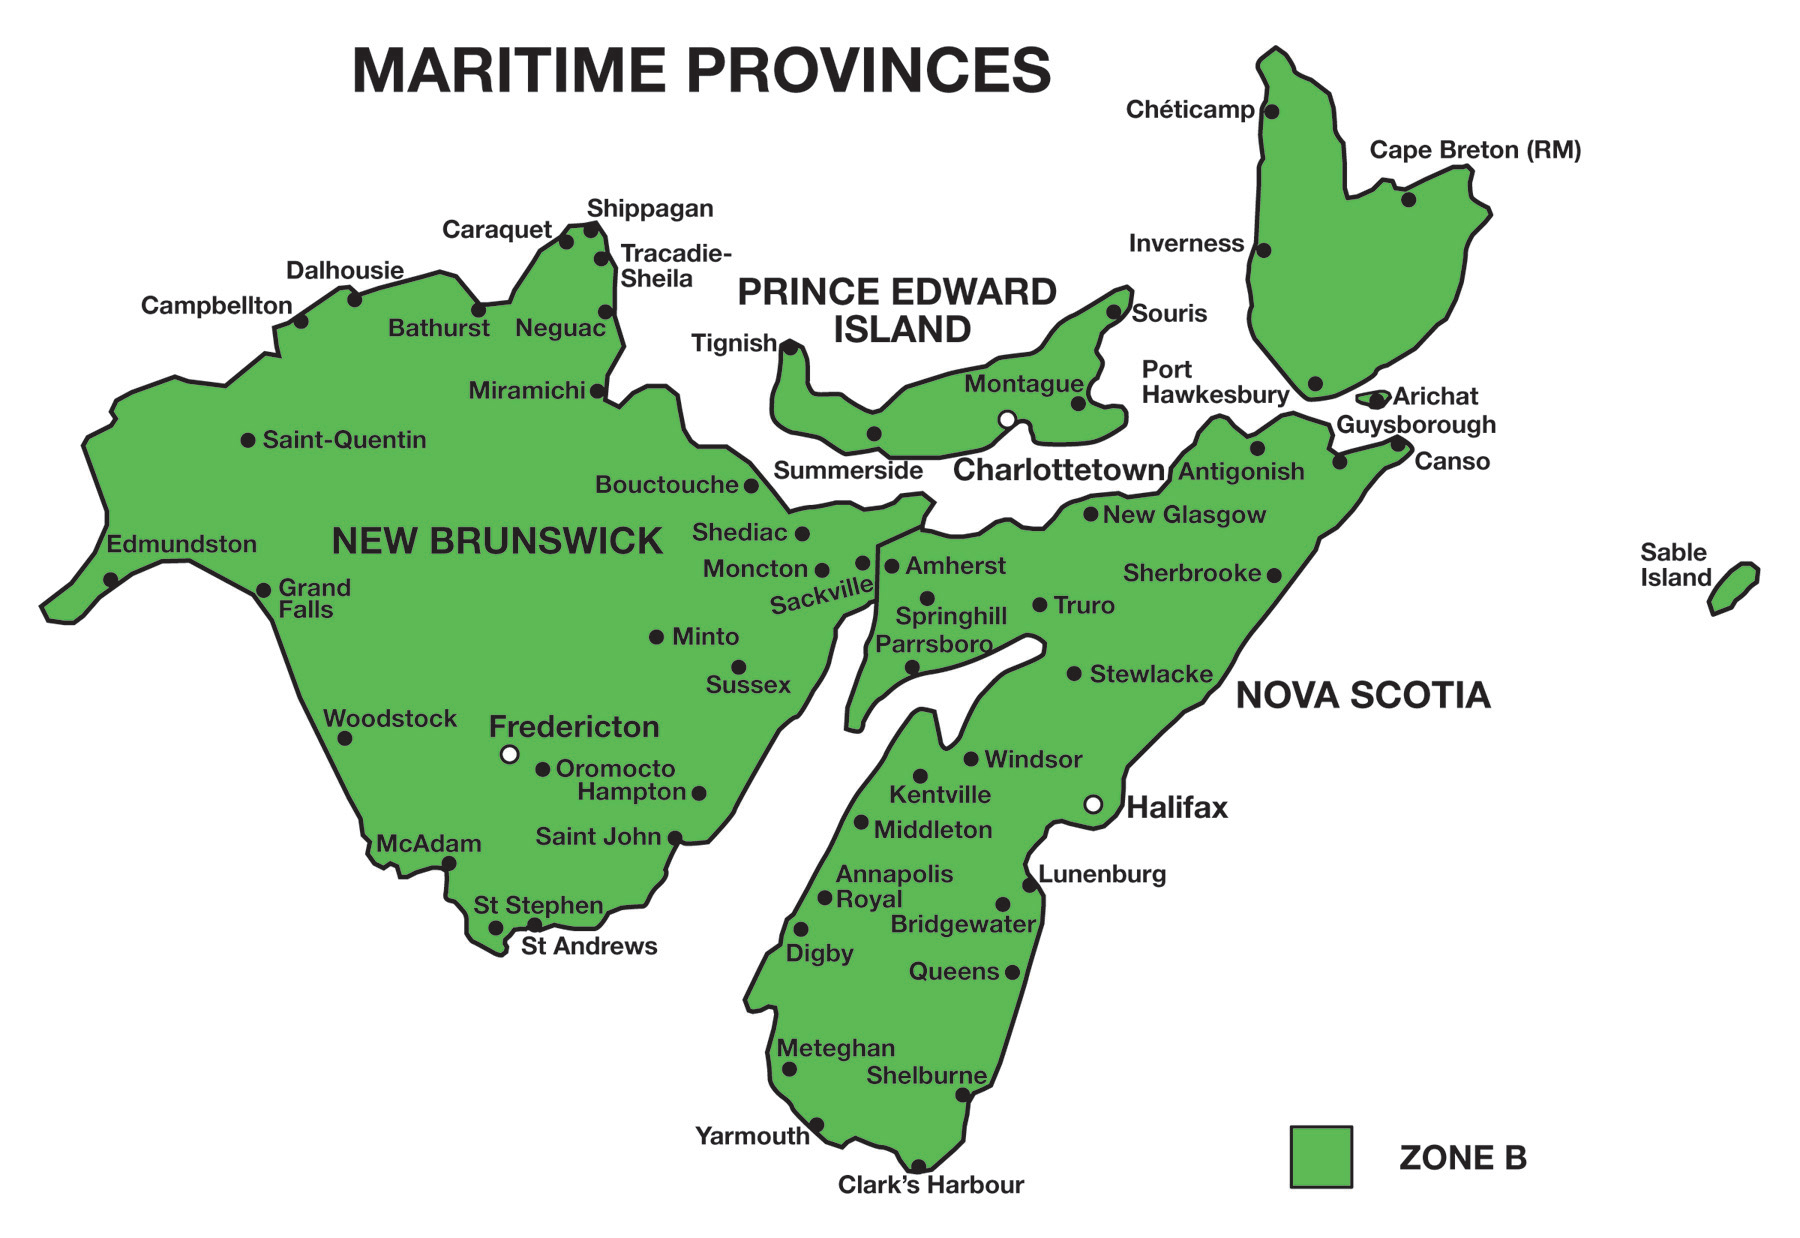 A map of the maritimes http://oee.nrcan.gc.ca/residential/business/manufacturers/images/provinces/maritimes-big-e.jpg